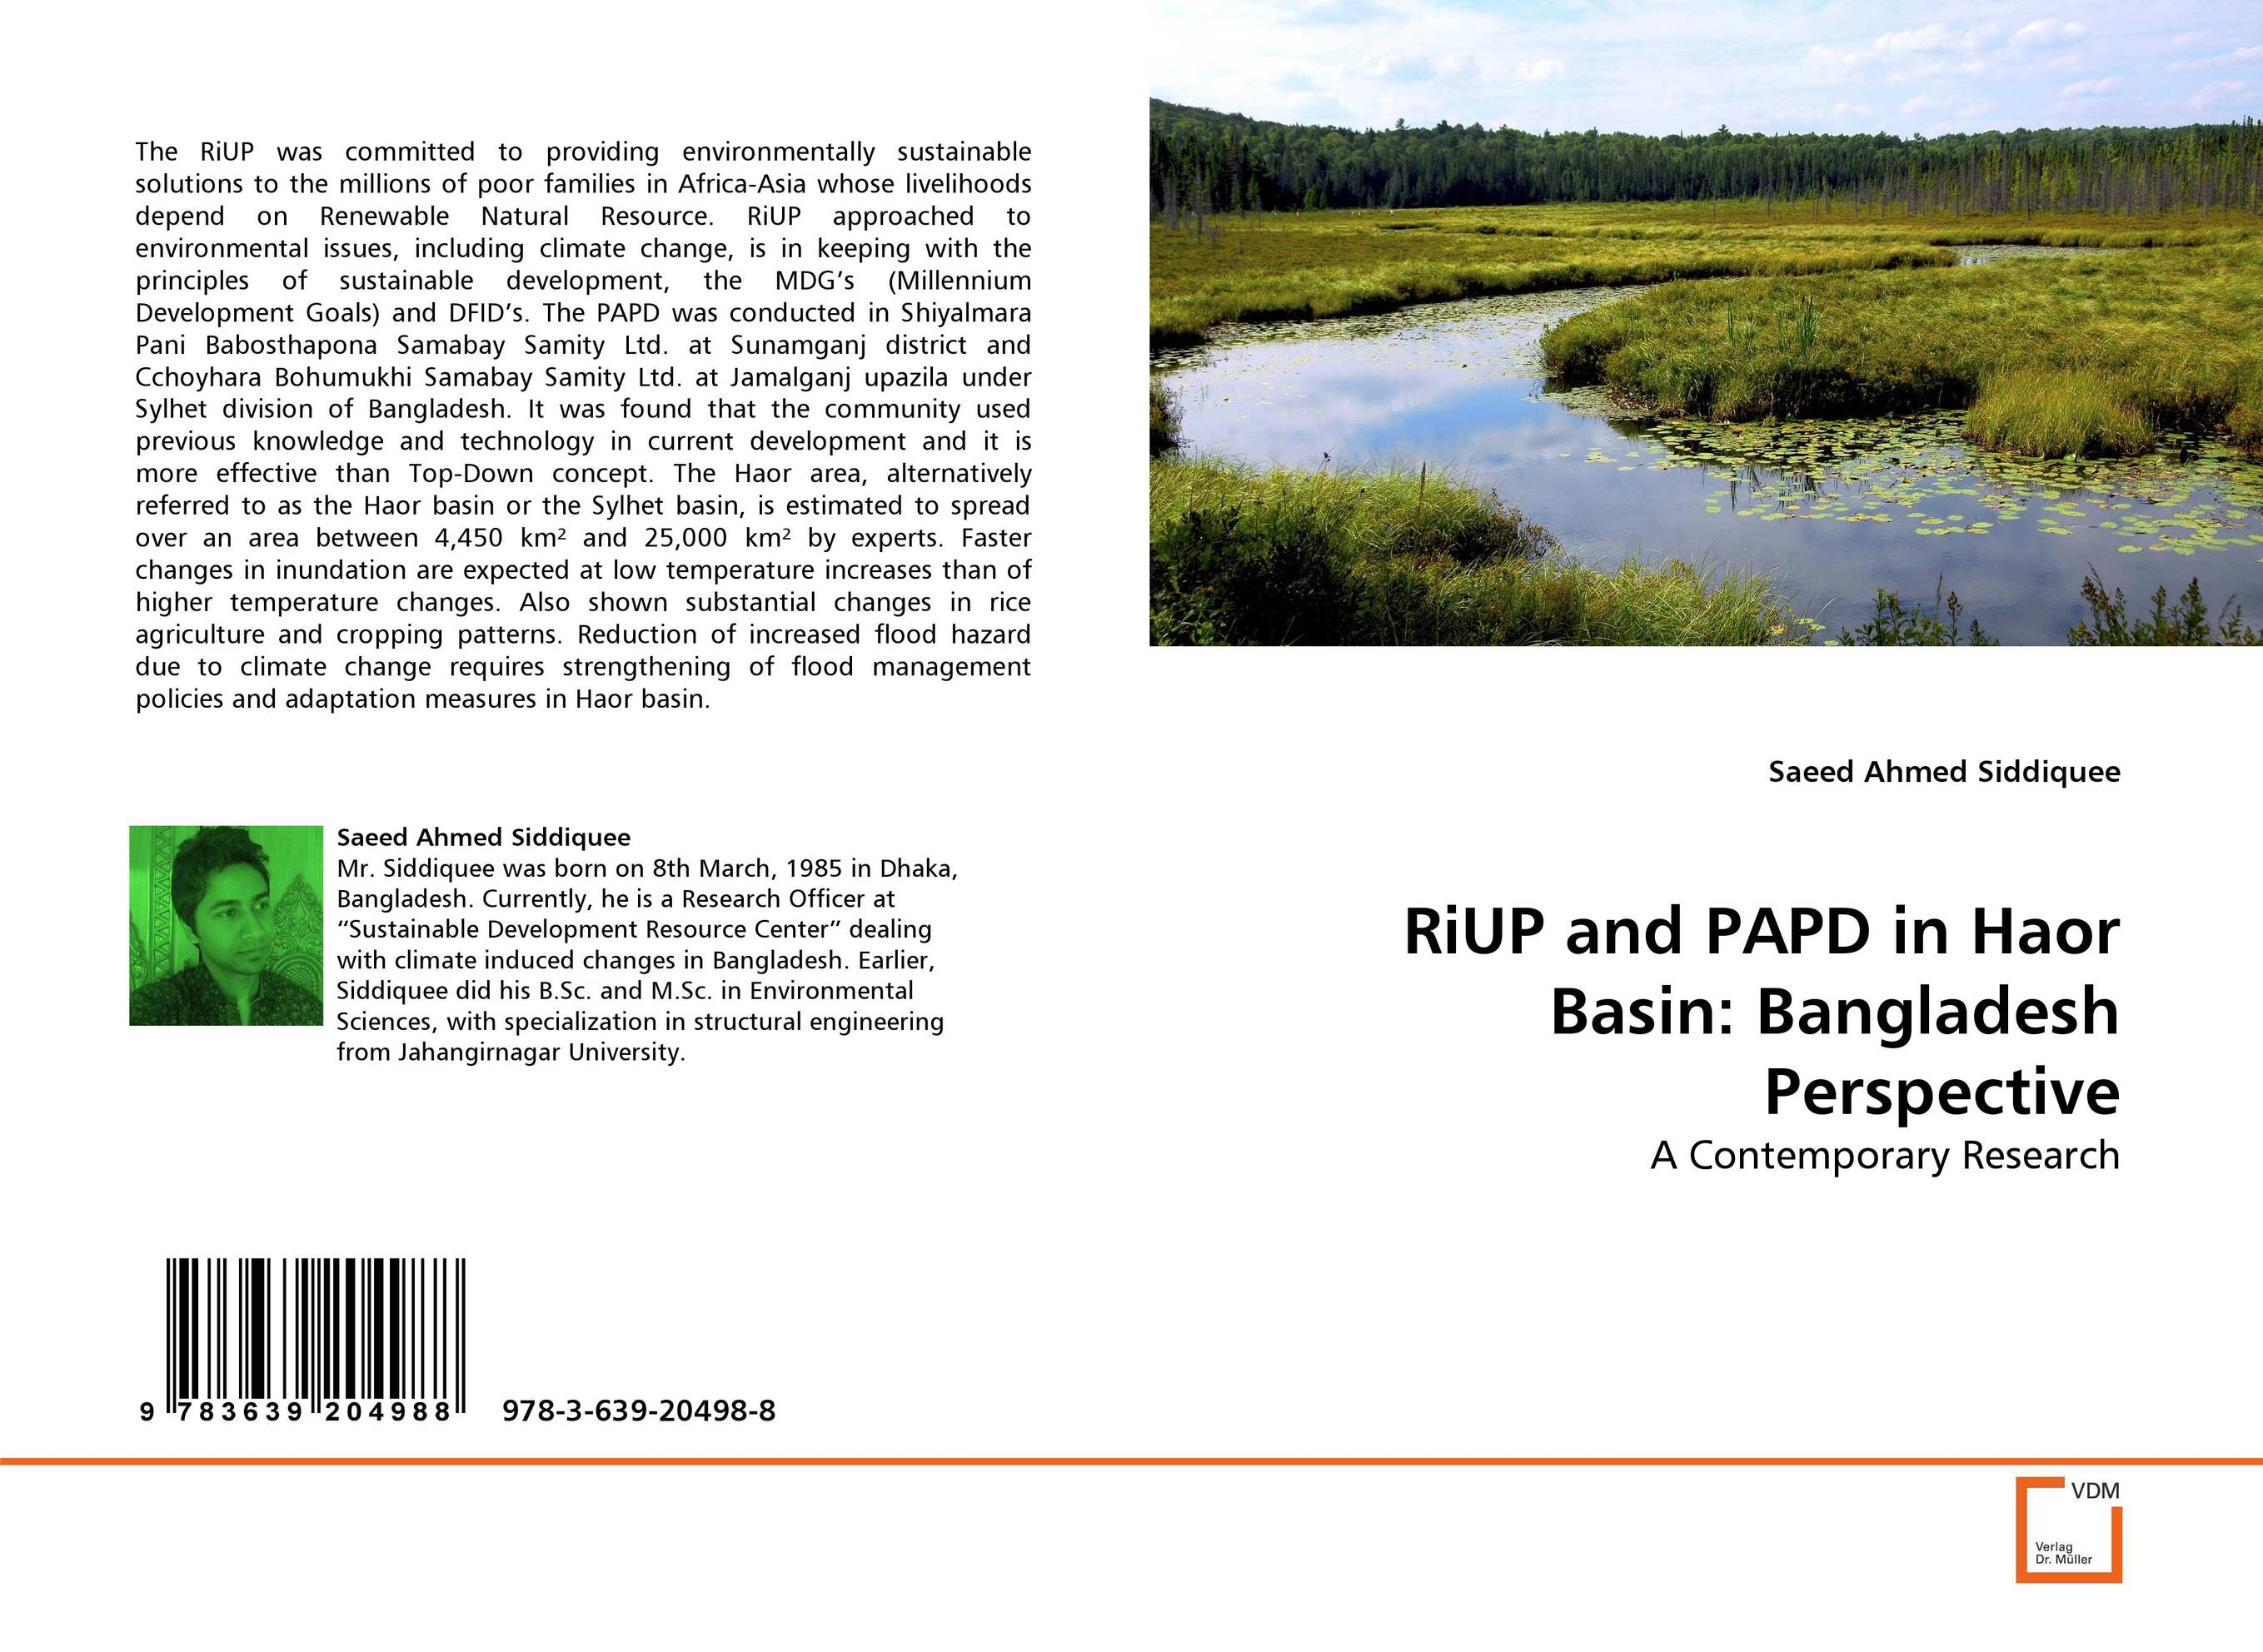 RiUP and PAPD in Haor Basin: Bangladesh Perspective riup and papd in haor basin bangladesh perspective